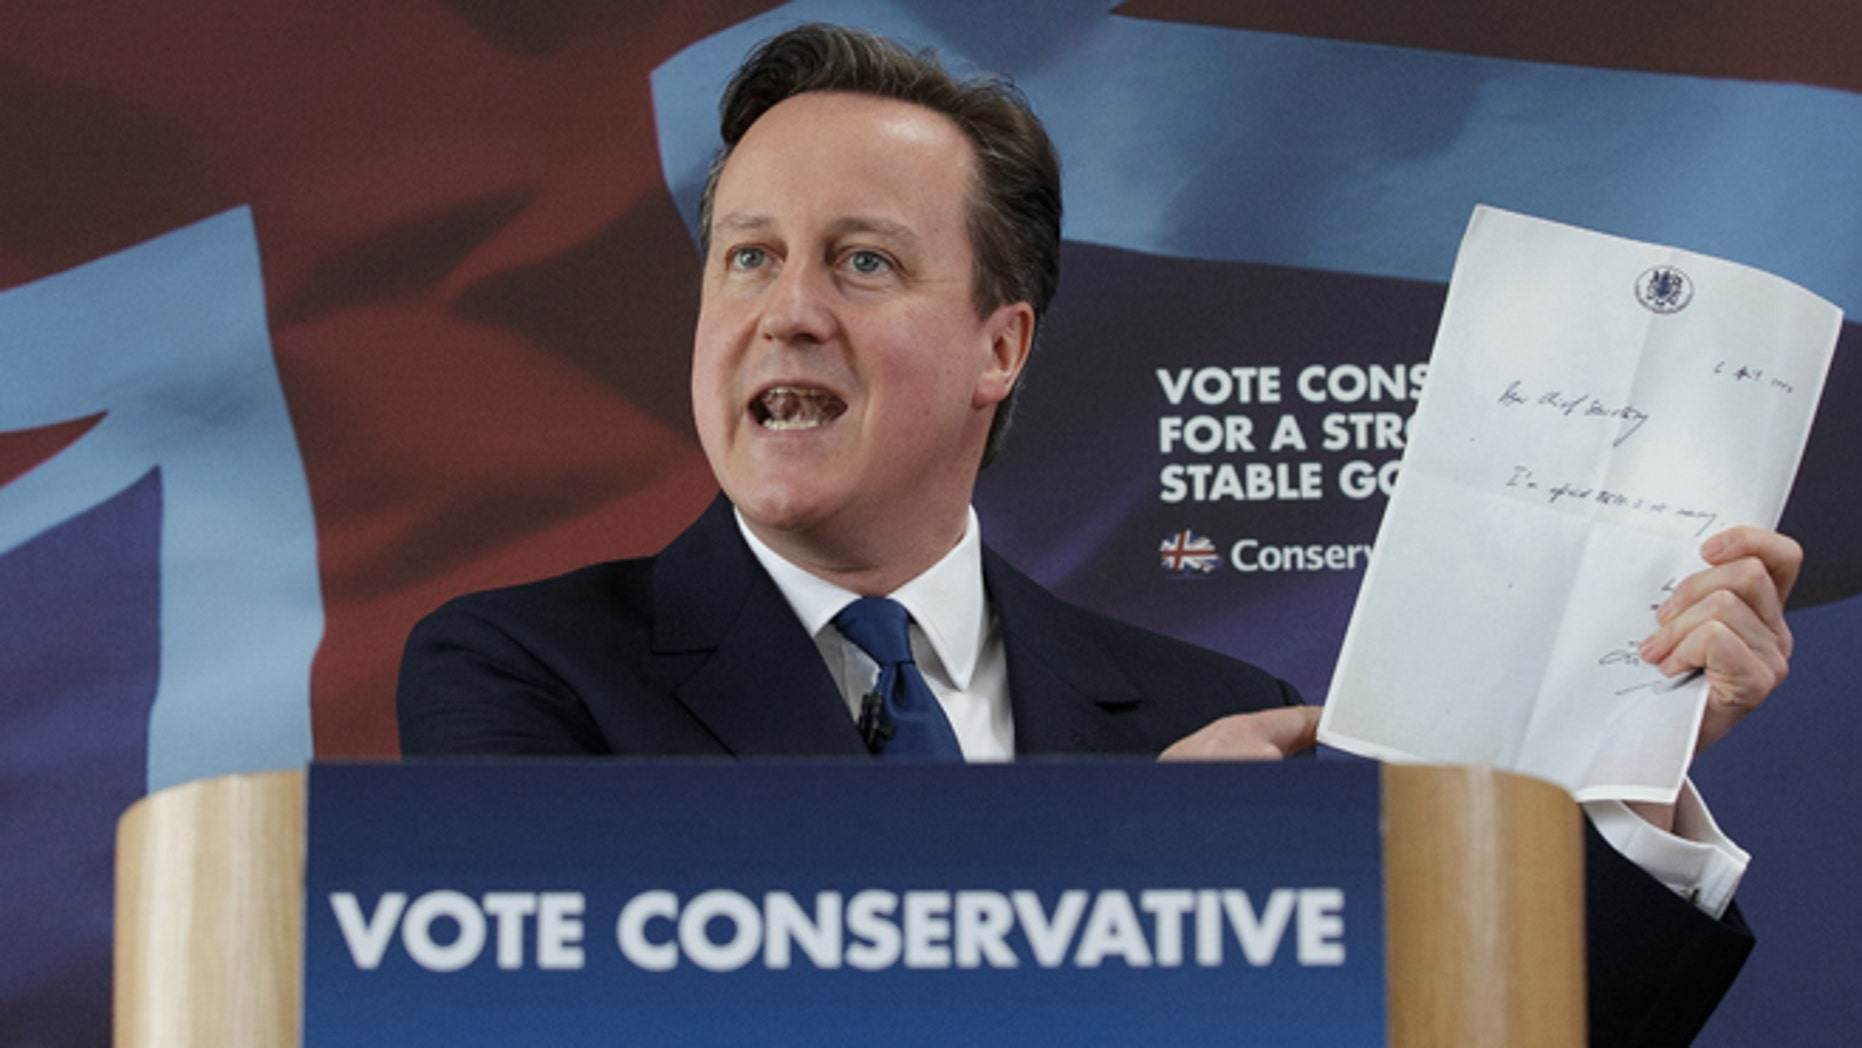 """British Prime Minister David Cameron holds up a photocopied note left by former chief secretary to the Treasury Liam Byrne on his desk after Labour's 2010 election defeat, which reads """"Dear Chief Secretary, I'm afraid there is no money. Kind regards - and good luck! Liam."""" as he delivers a speech at the Ambleside Sports Club in Nuneaton, England, Sunday, May 3, 2014. Britain goes to the polls in a General Election on May 7. (AP Photo/Tim Ireland, Pool)"""